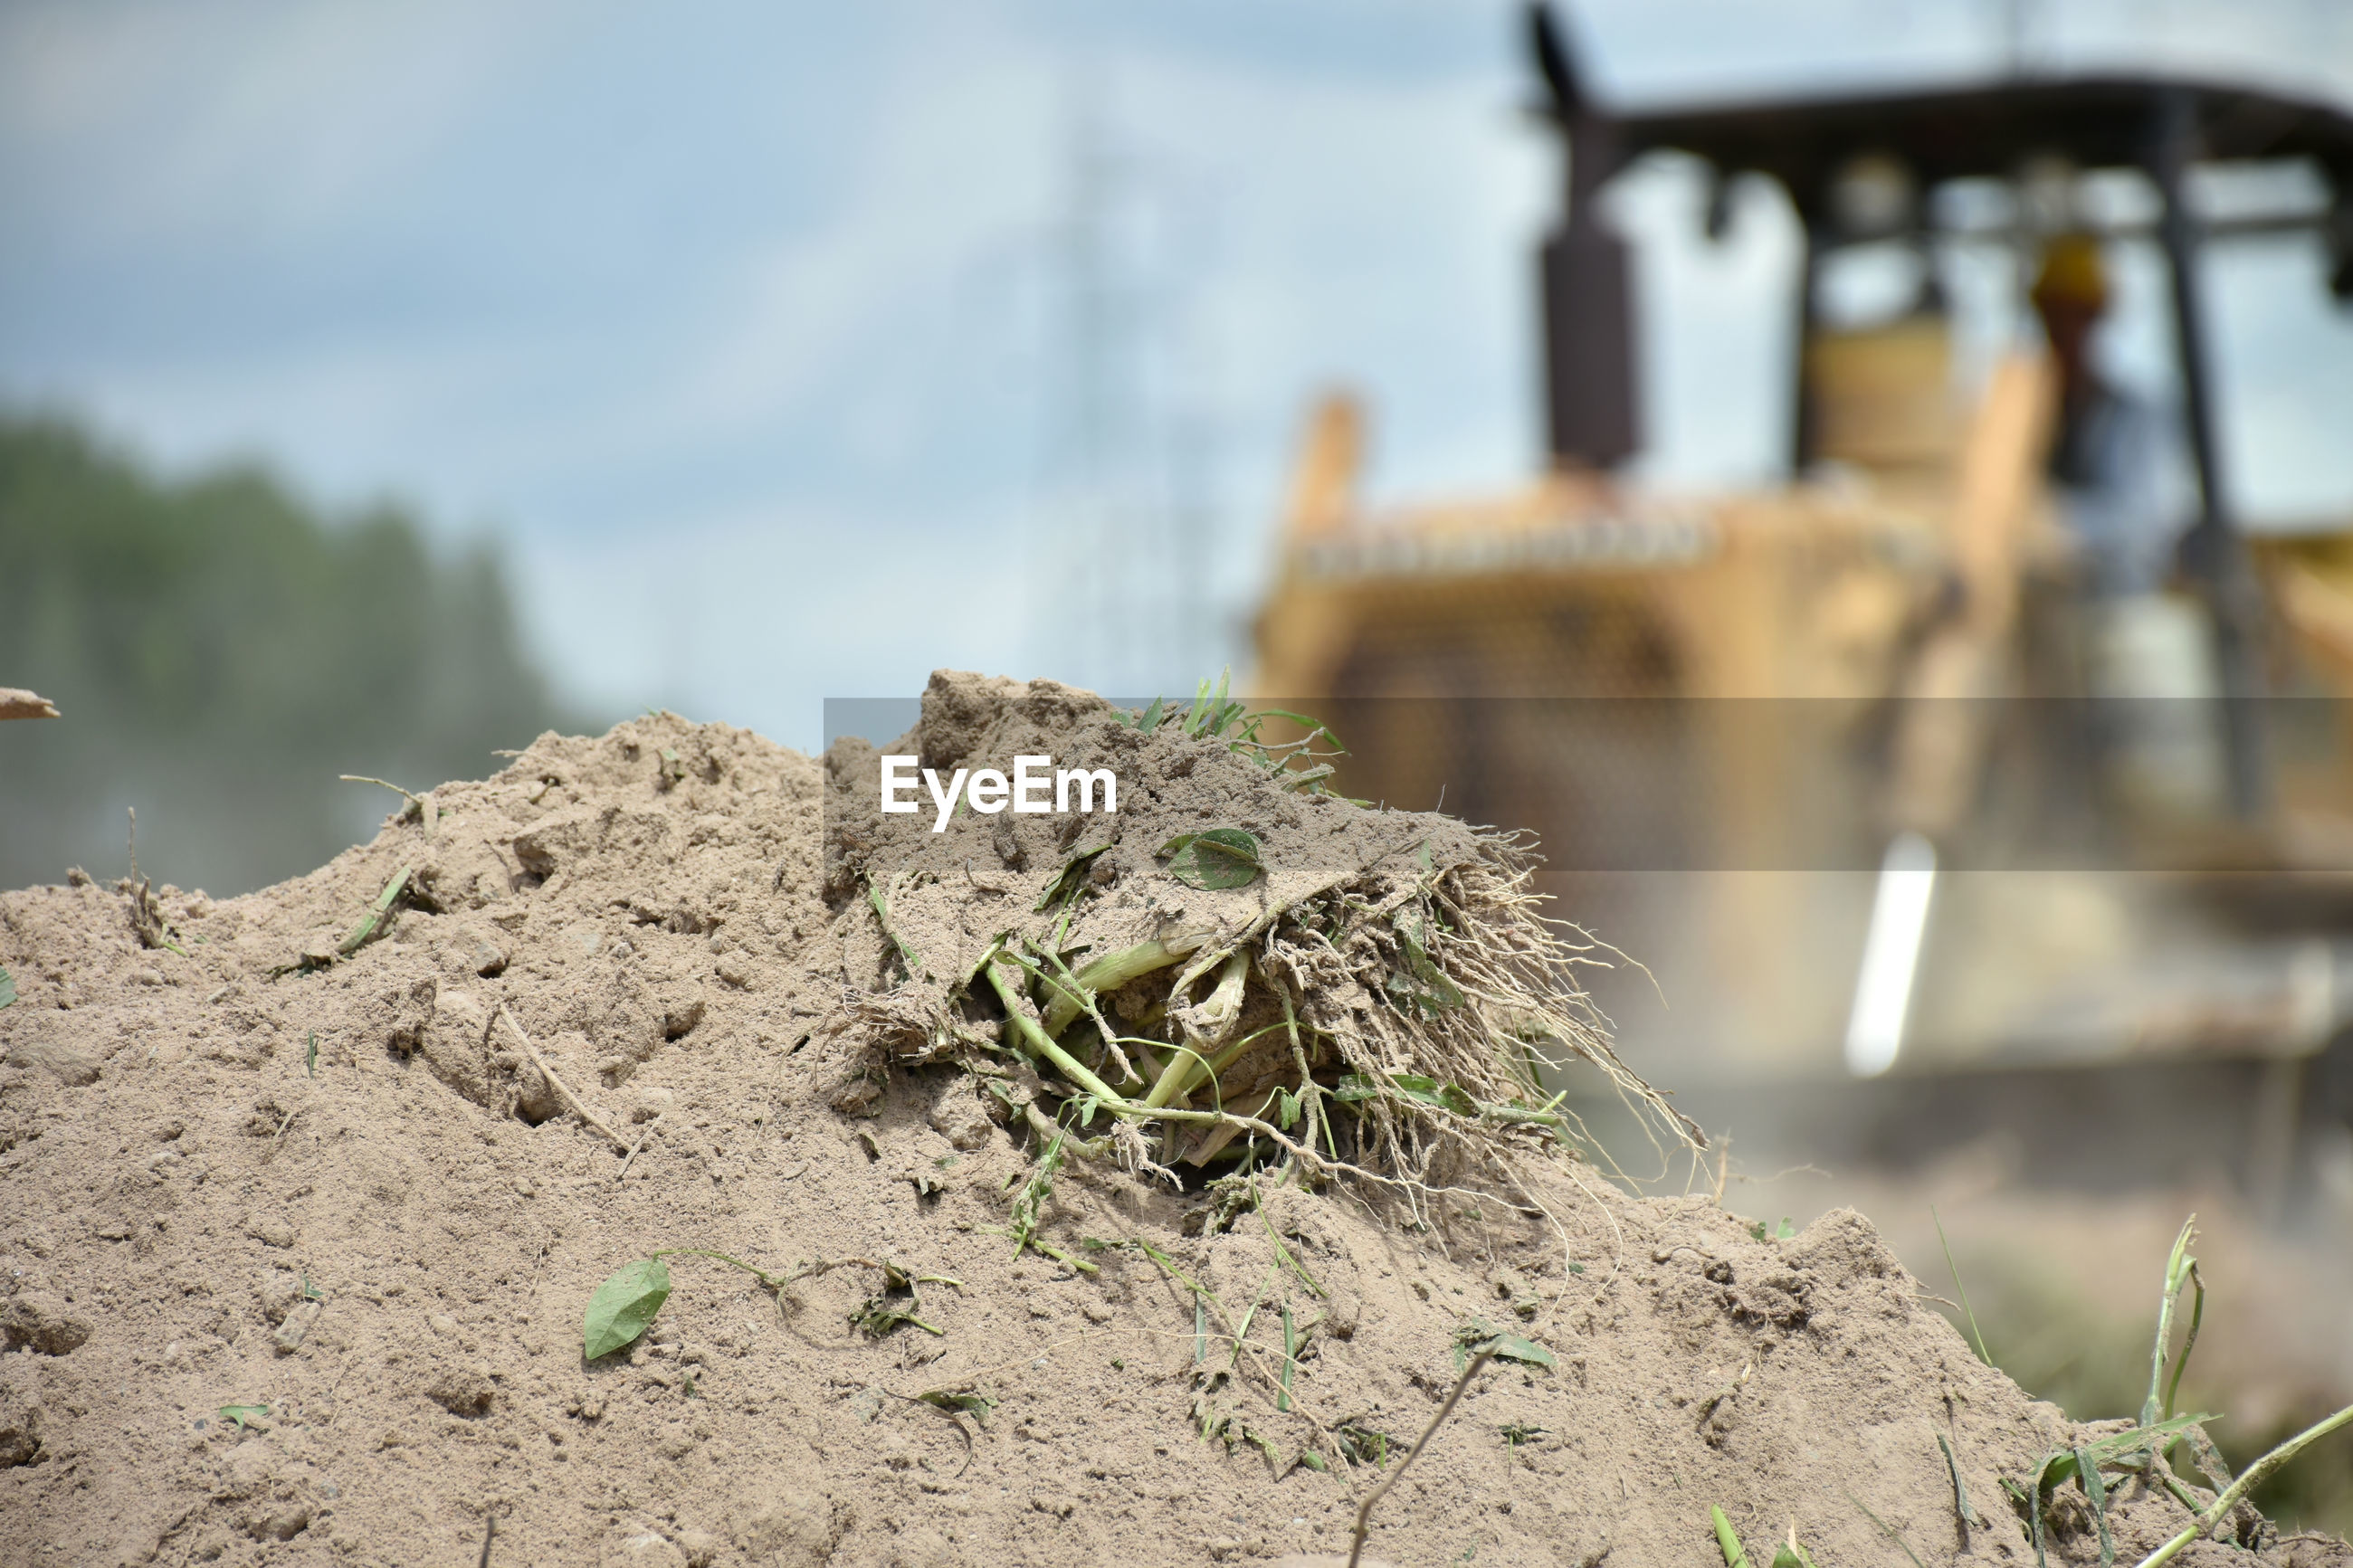 A pile of soil isolated with blurred image of tractor working in a field